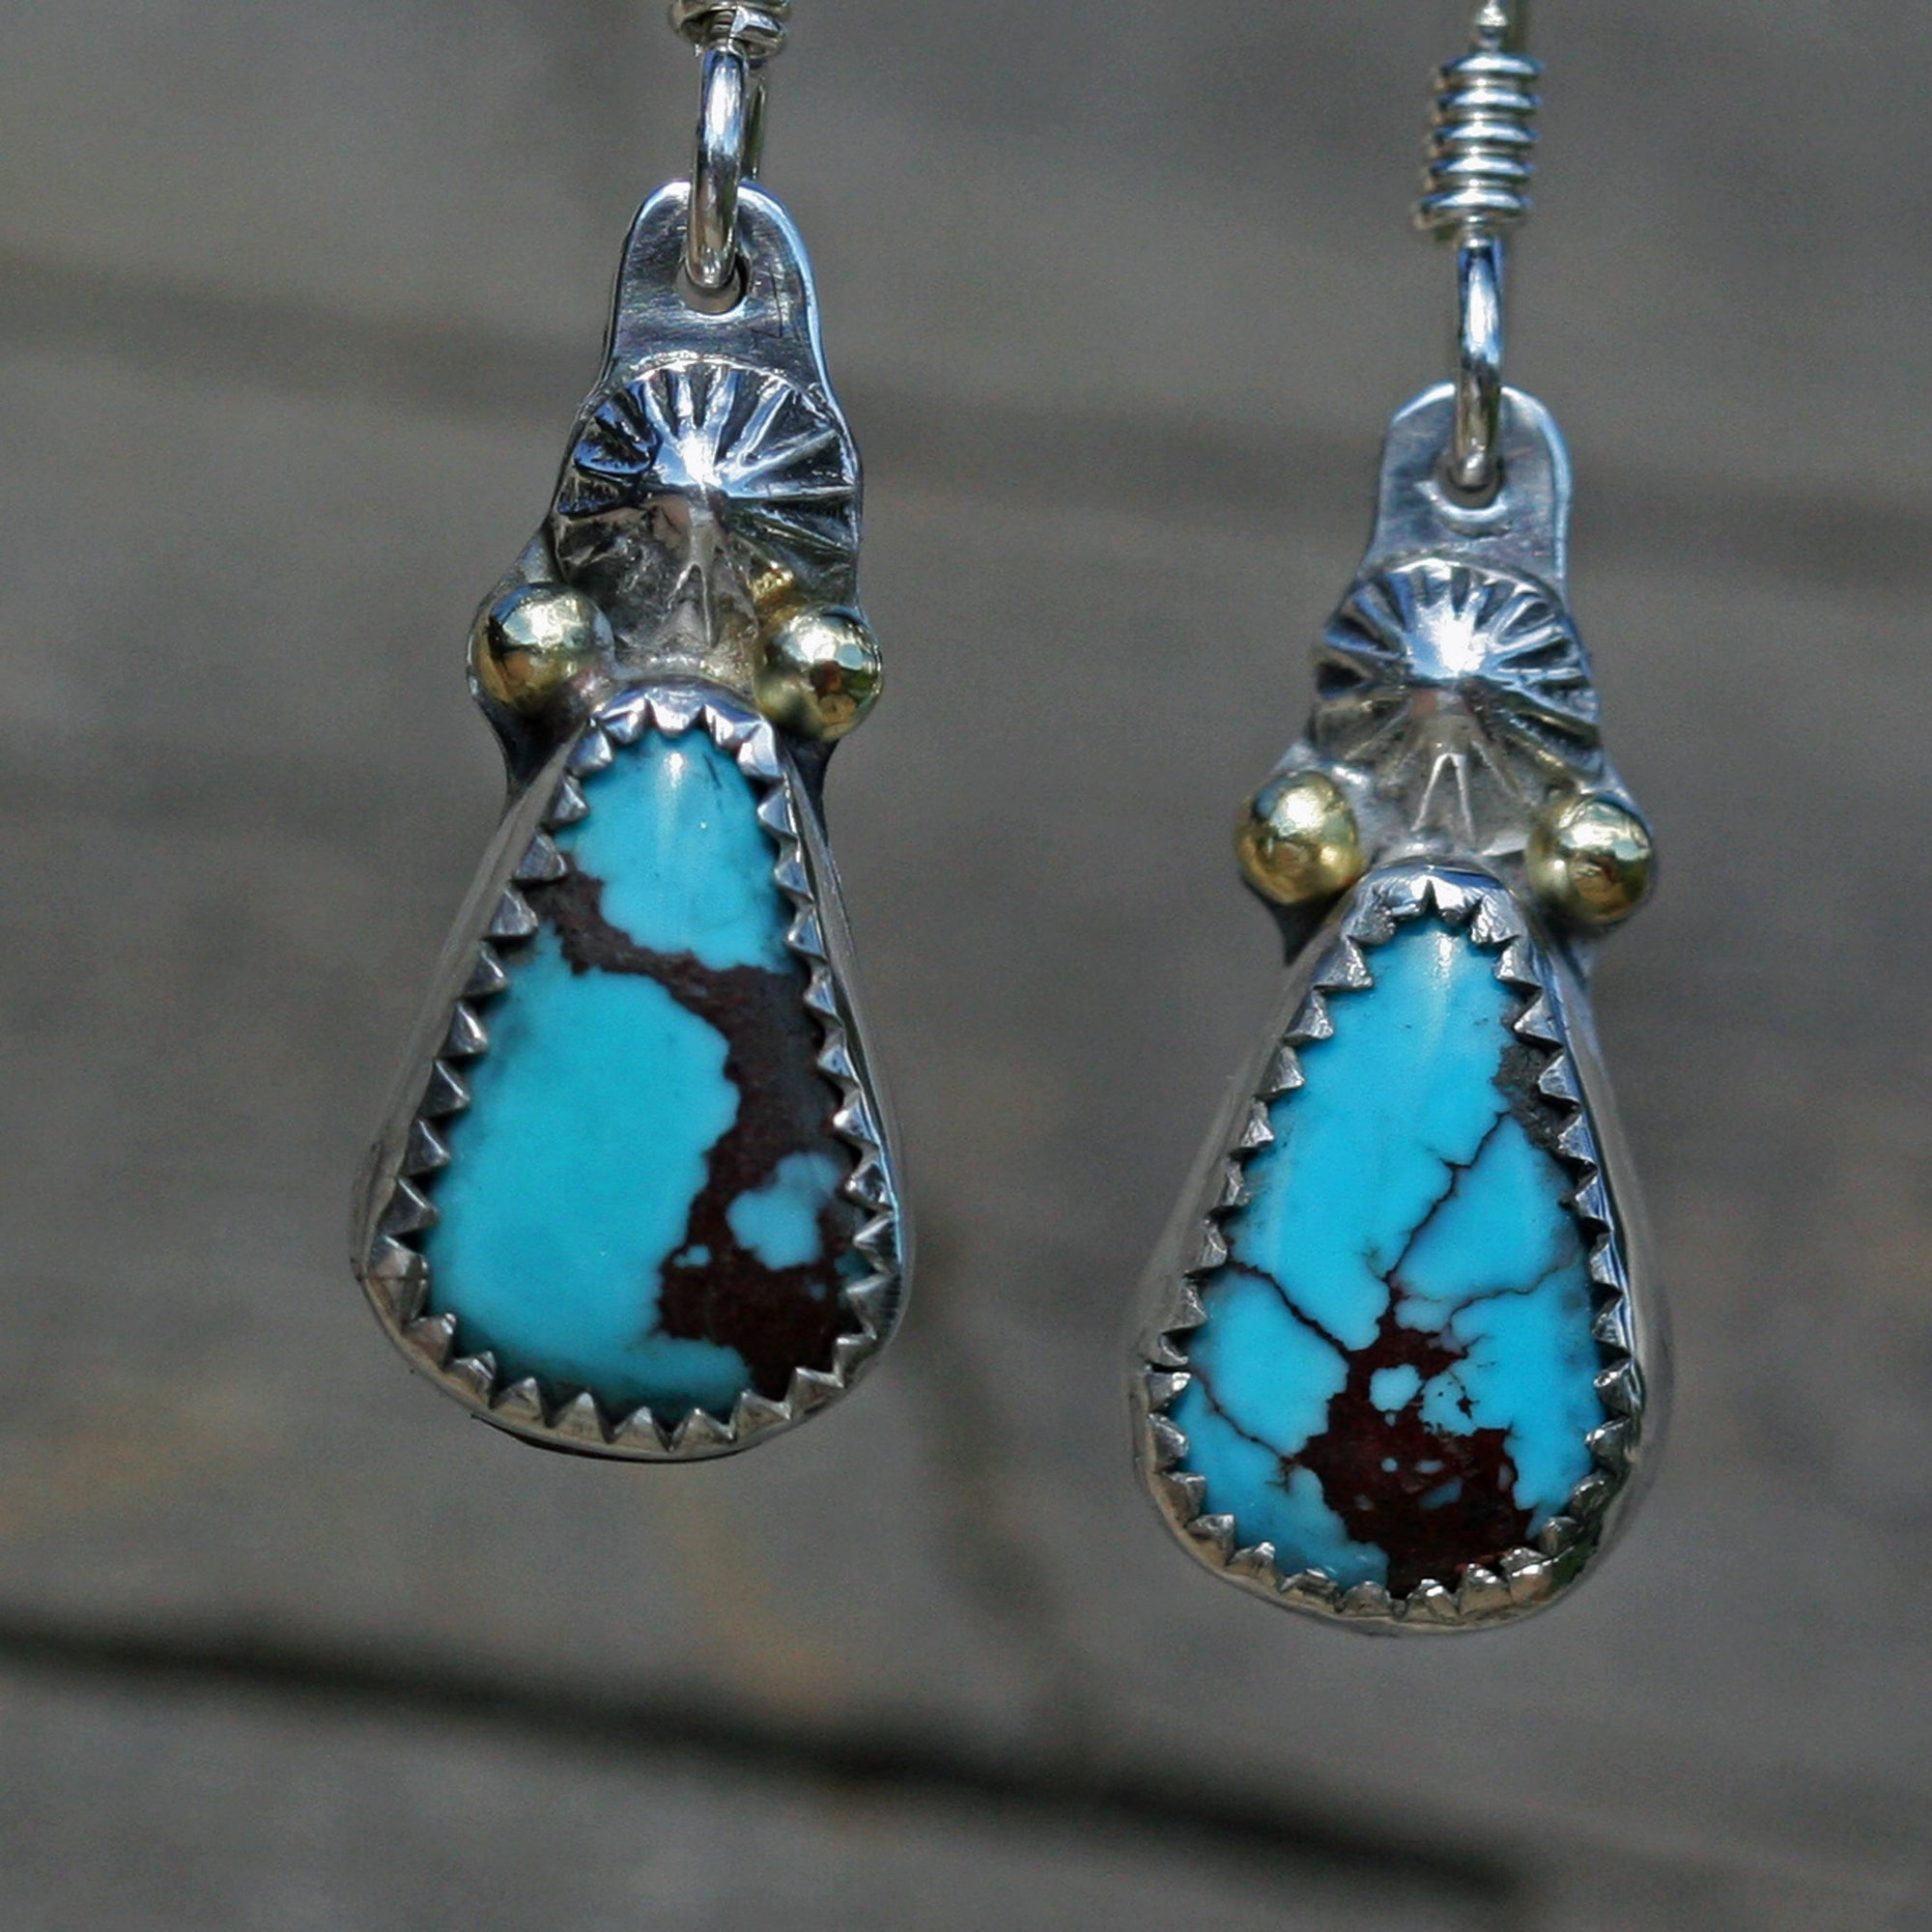 Kingman Blue Turquoise set in Sterling Silver with 18k gold Accents, Boho, Gypsy